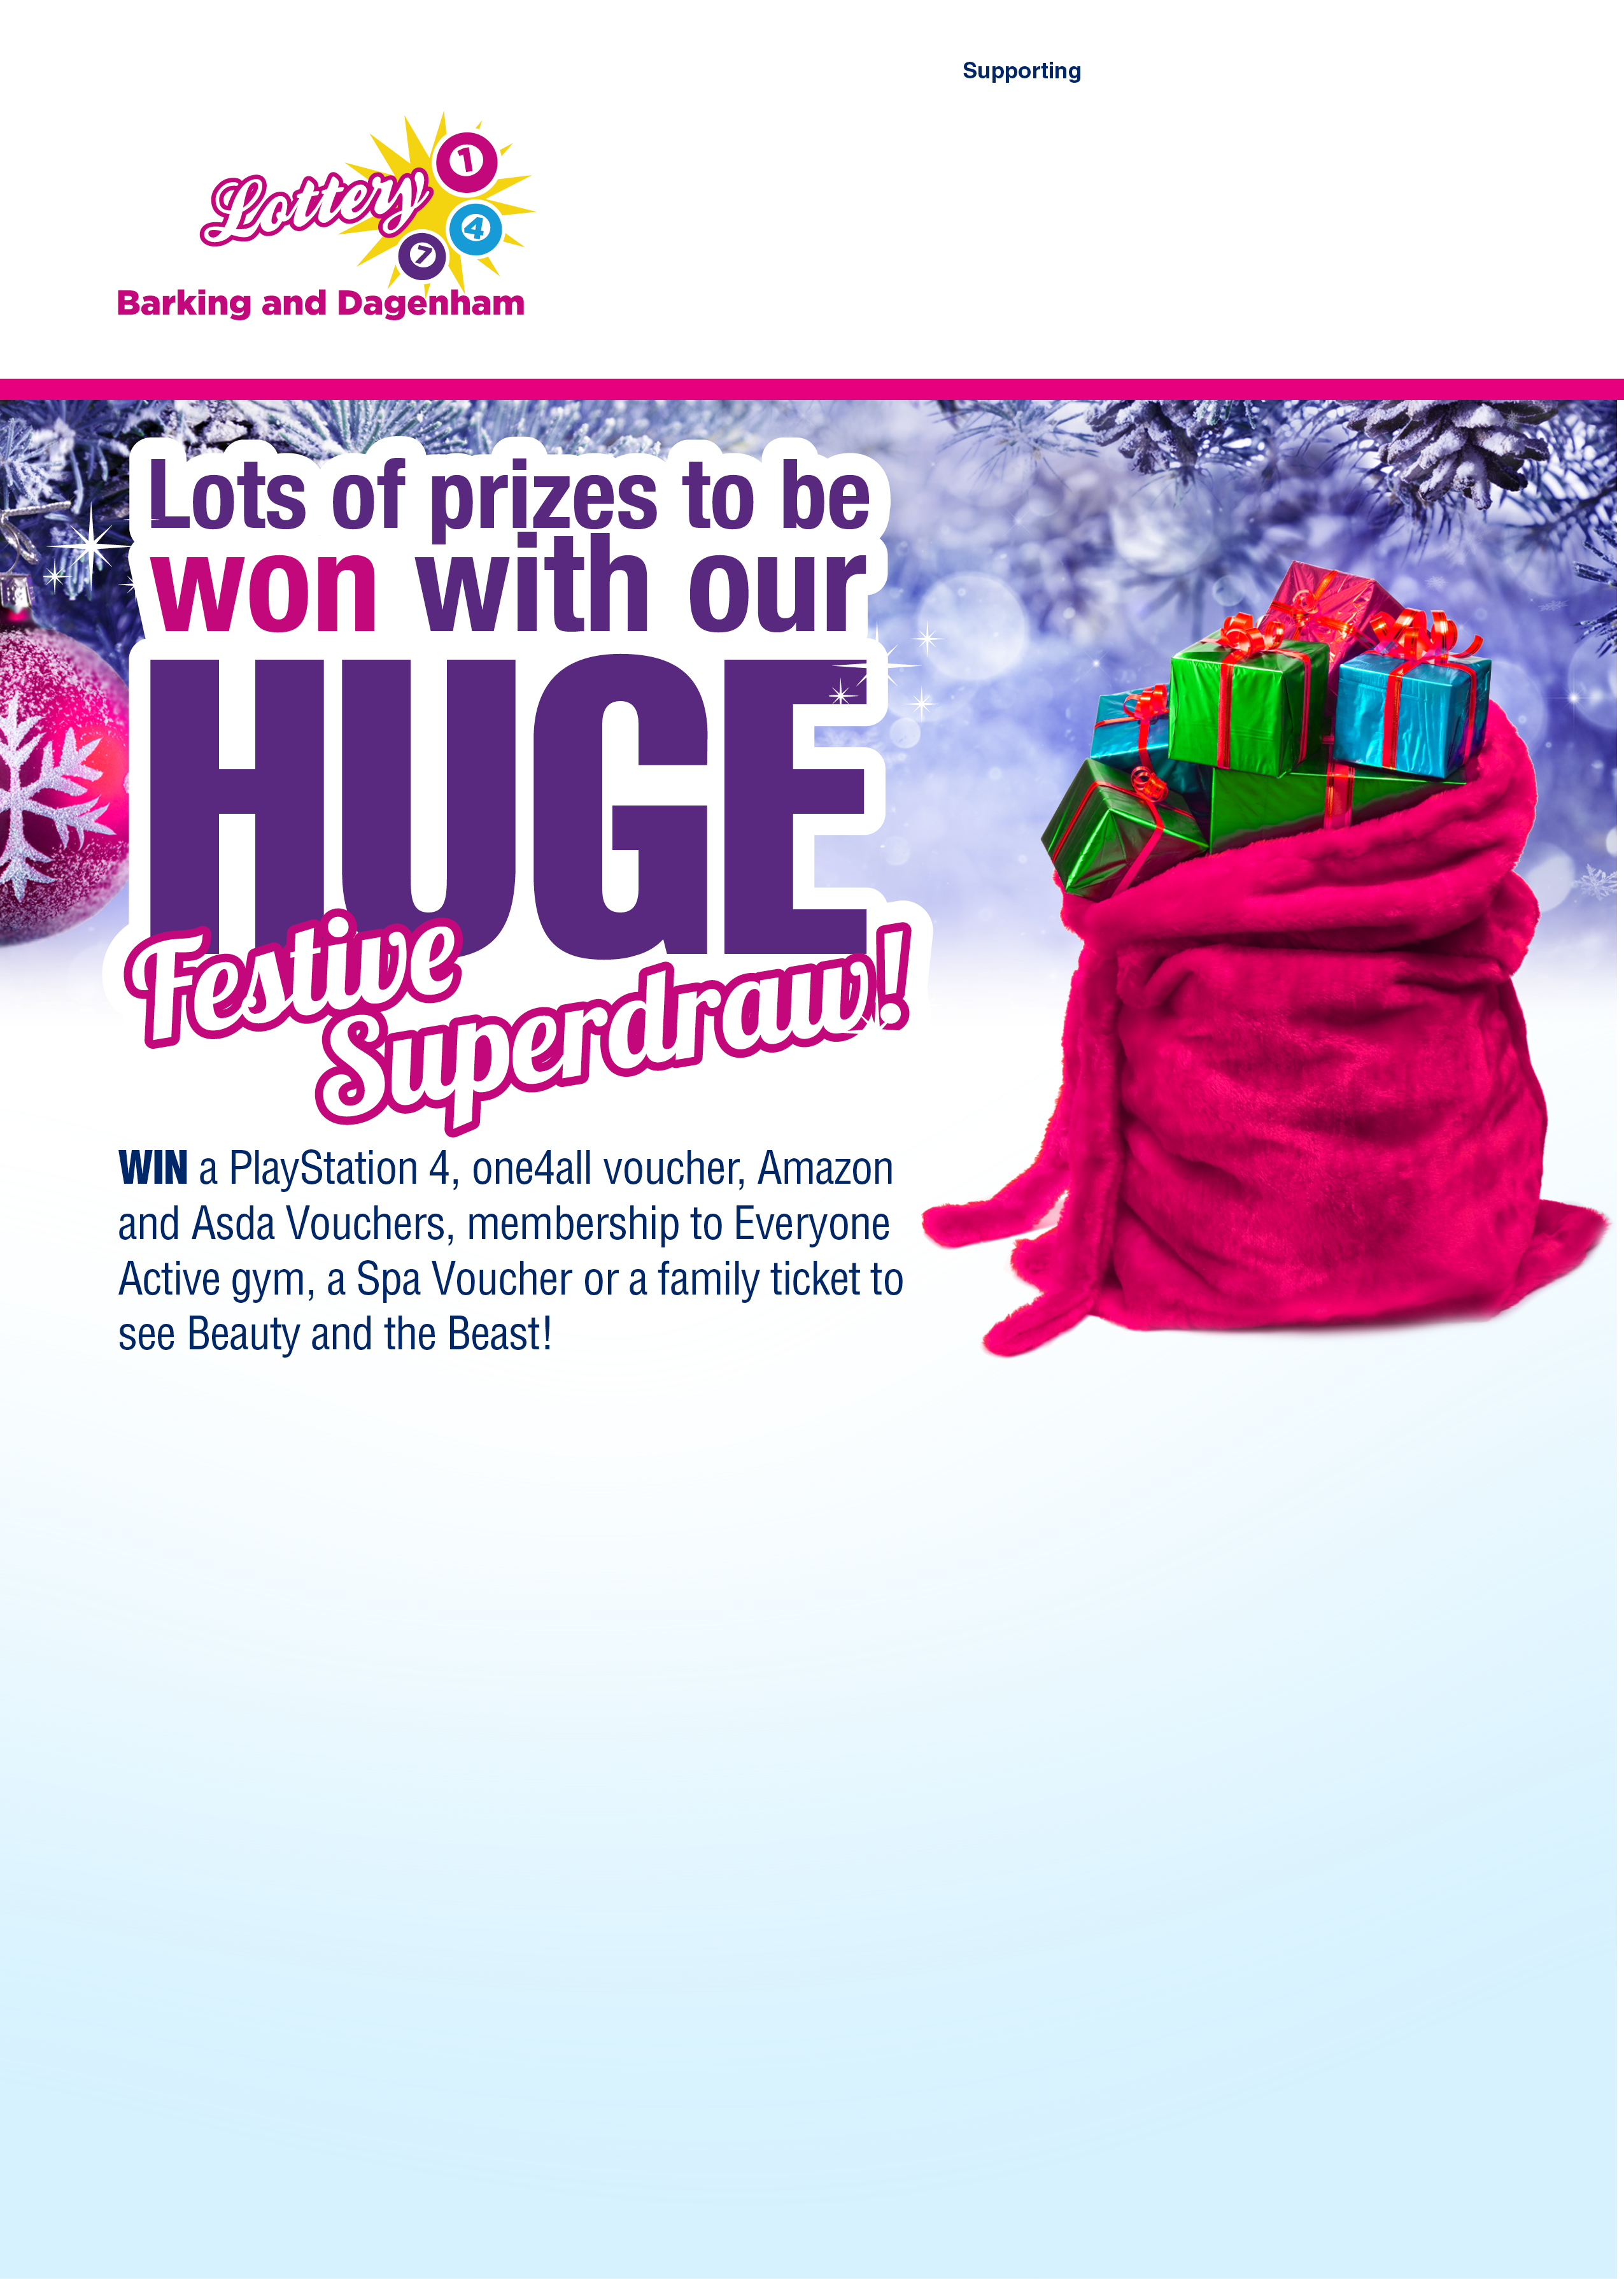 Lots of prizes to be won with our HUGE Festive Superdraw!